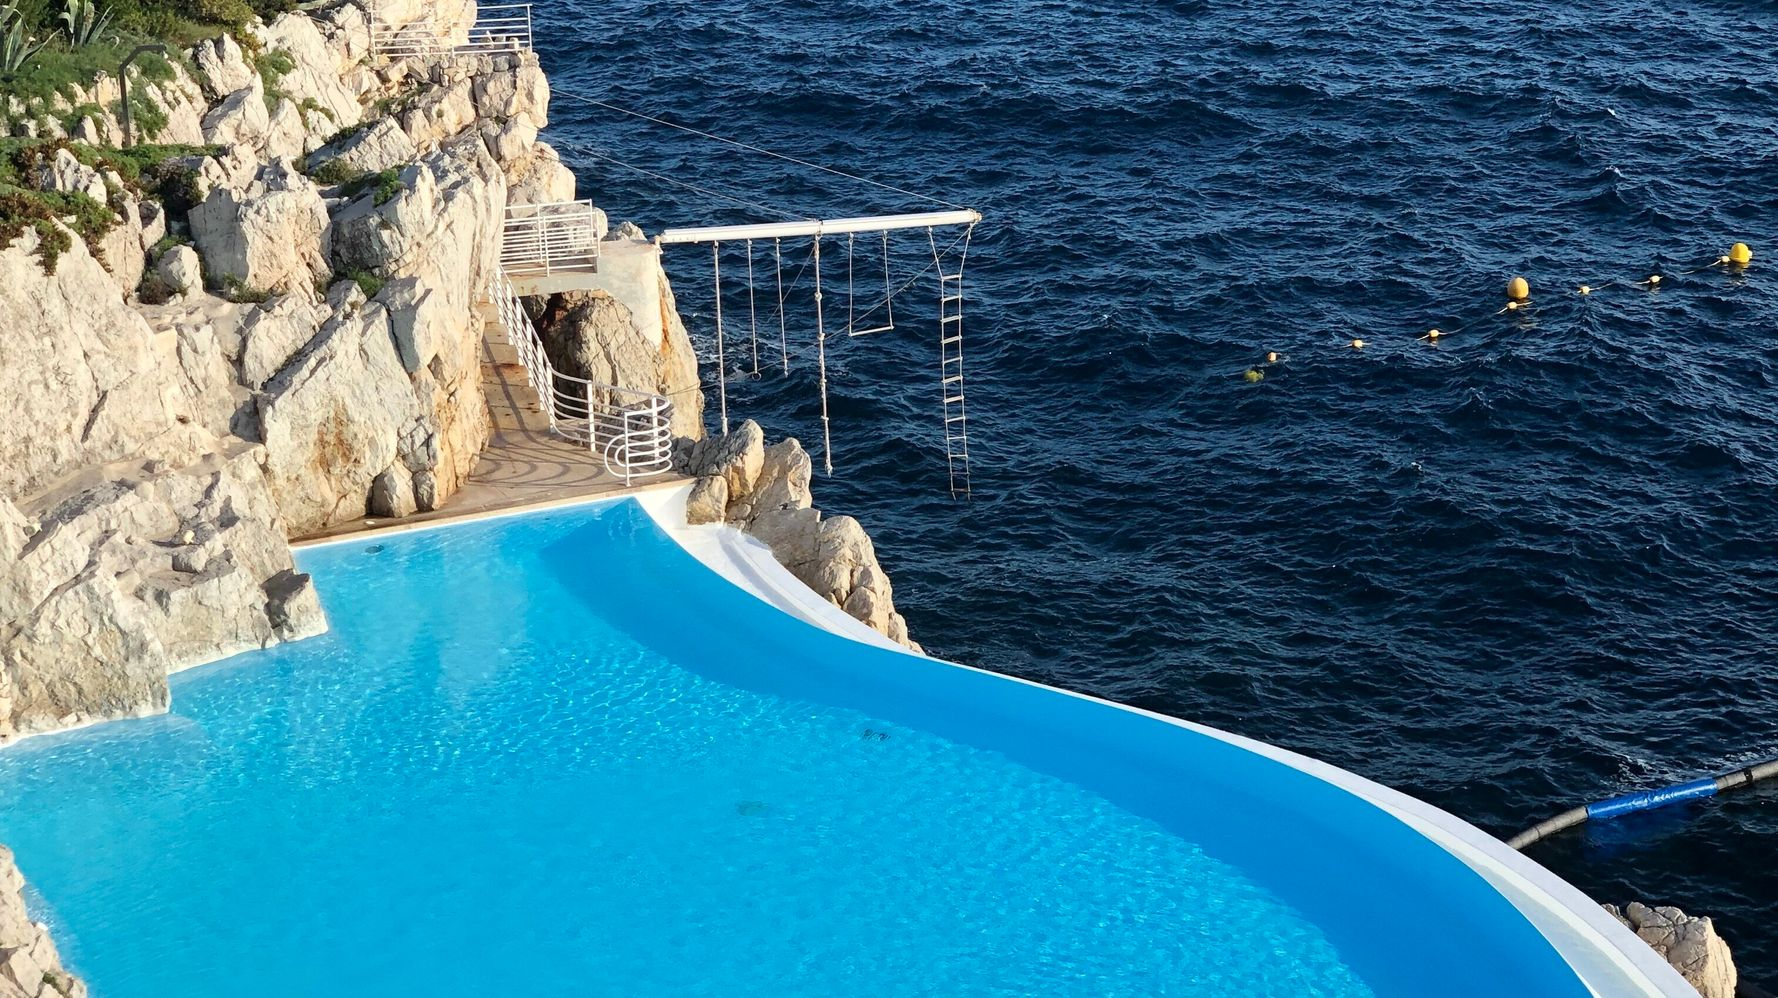 30 Spectacular Hotel Pools Around The World